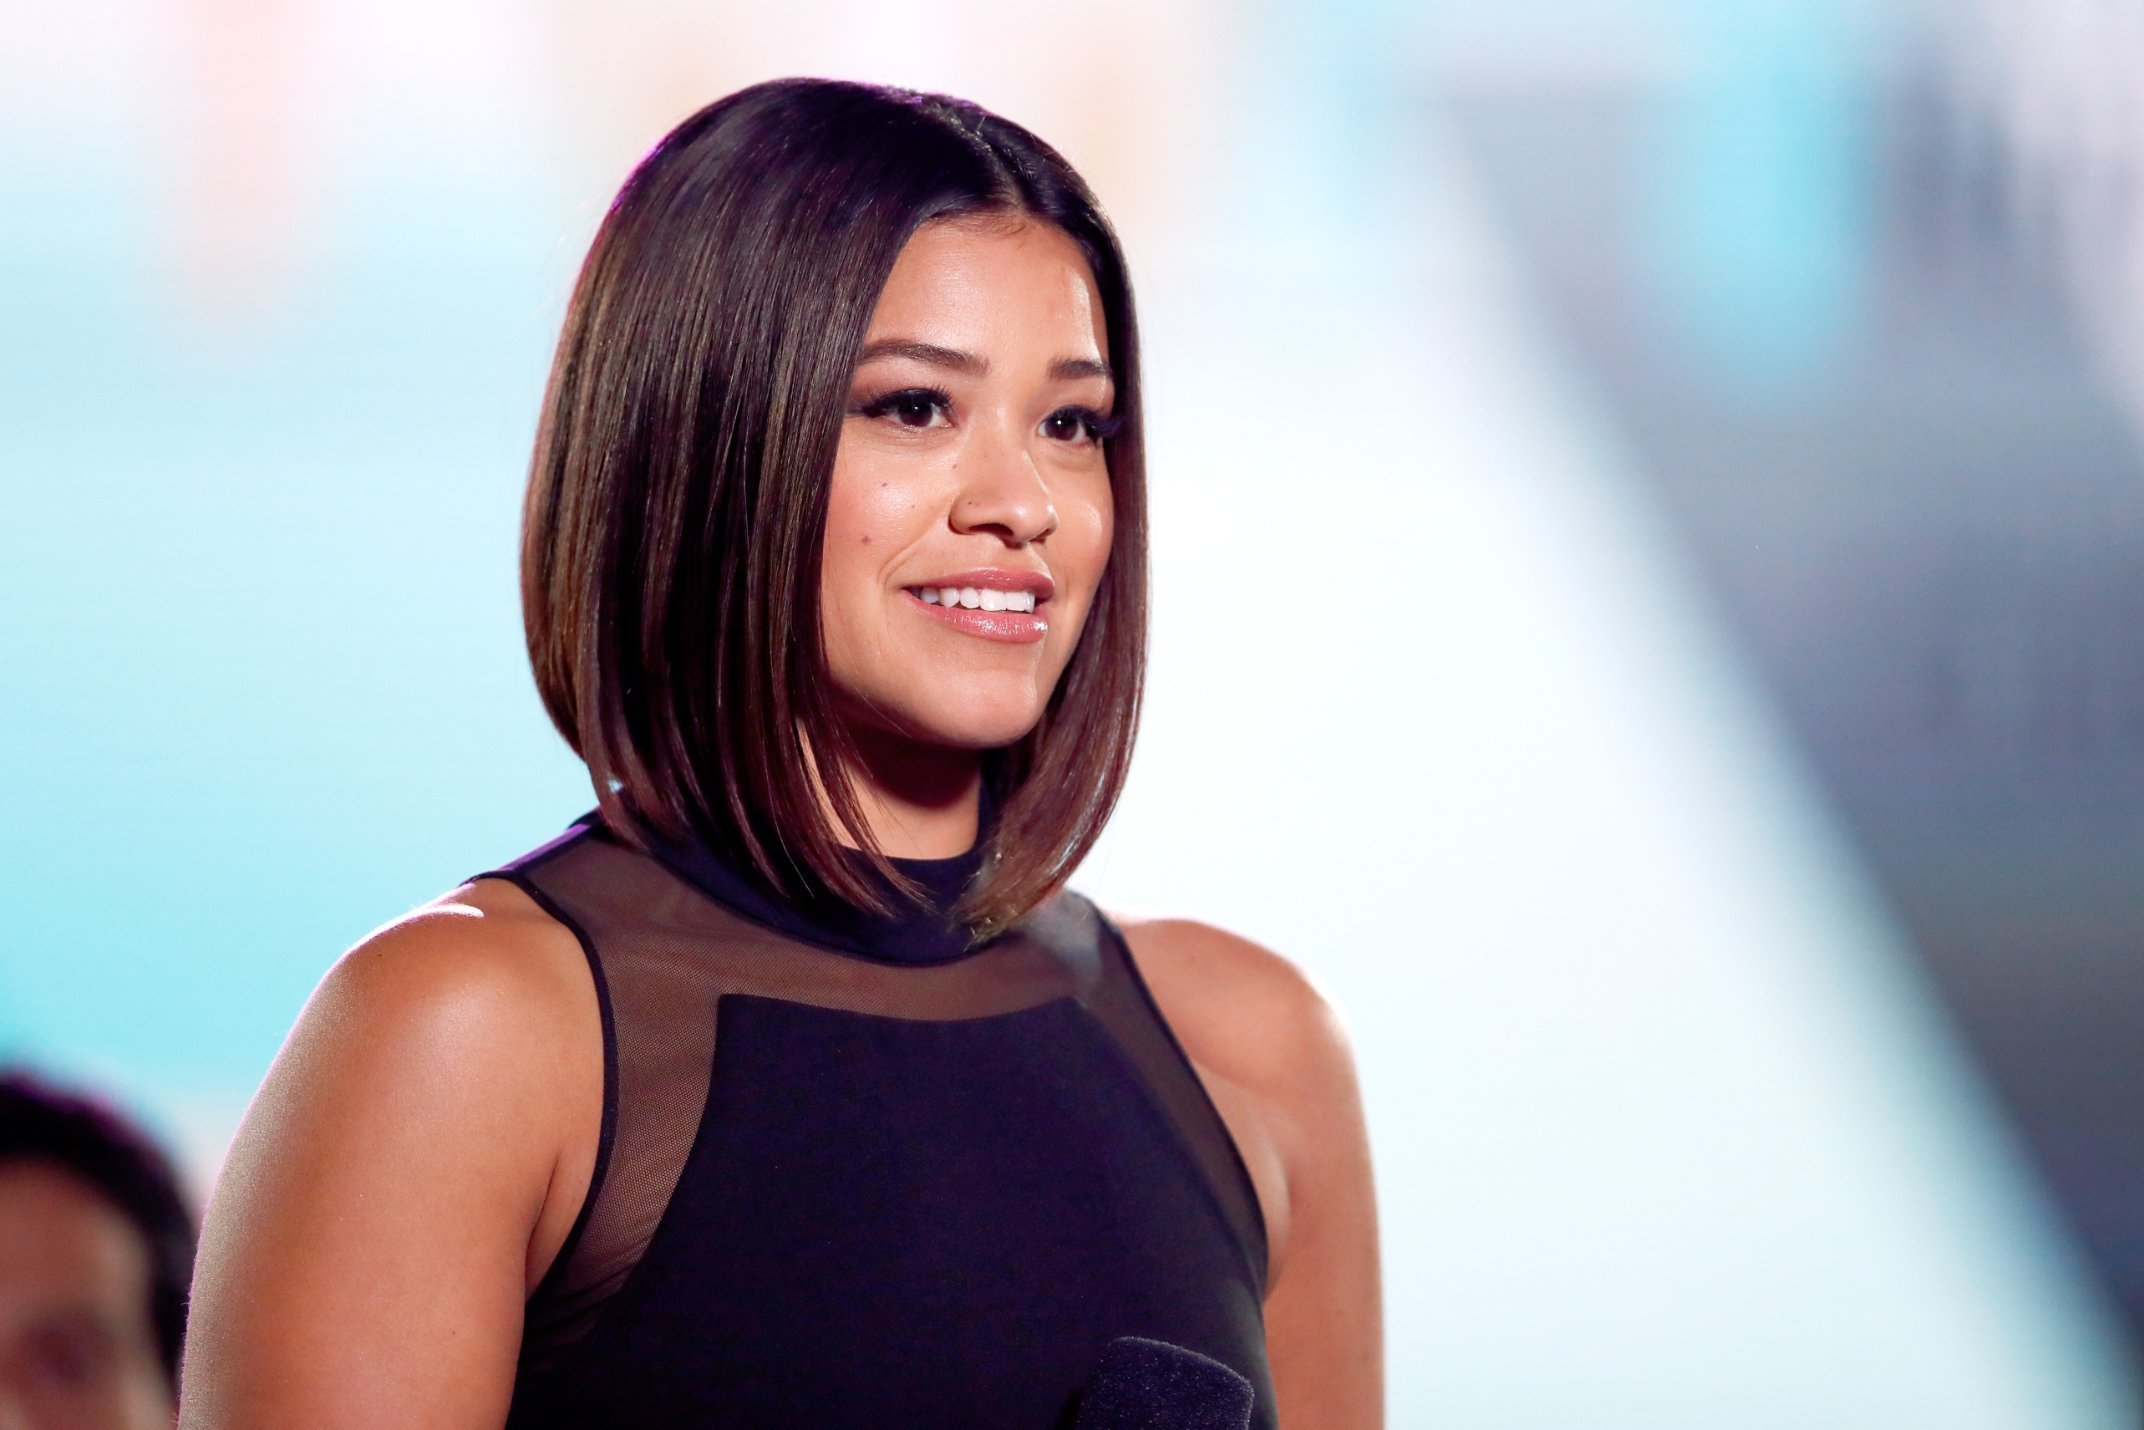 Actress Gina Rodriguez comes under fire over her use of the n-word